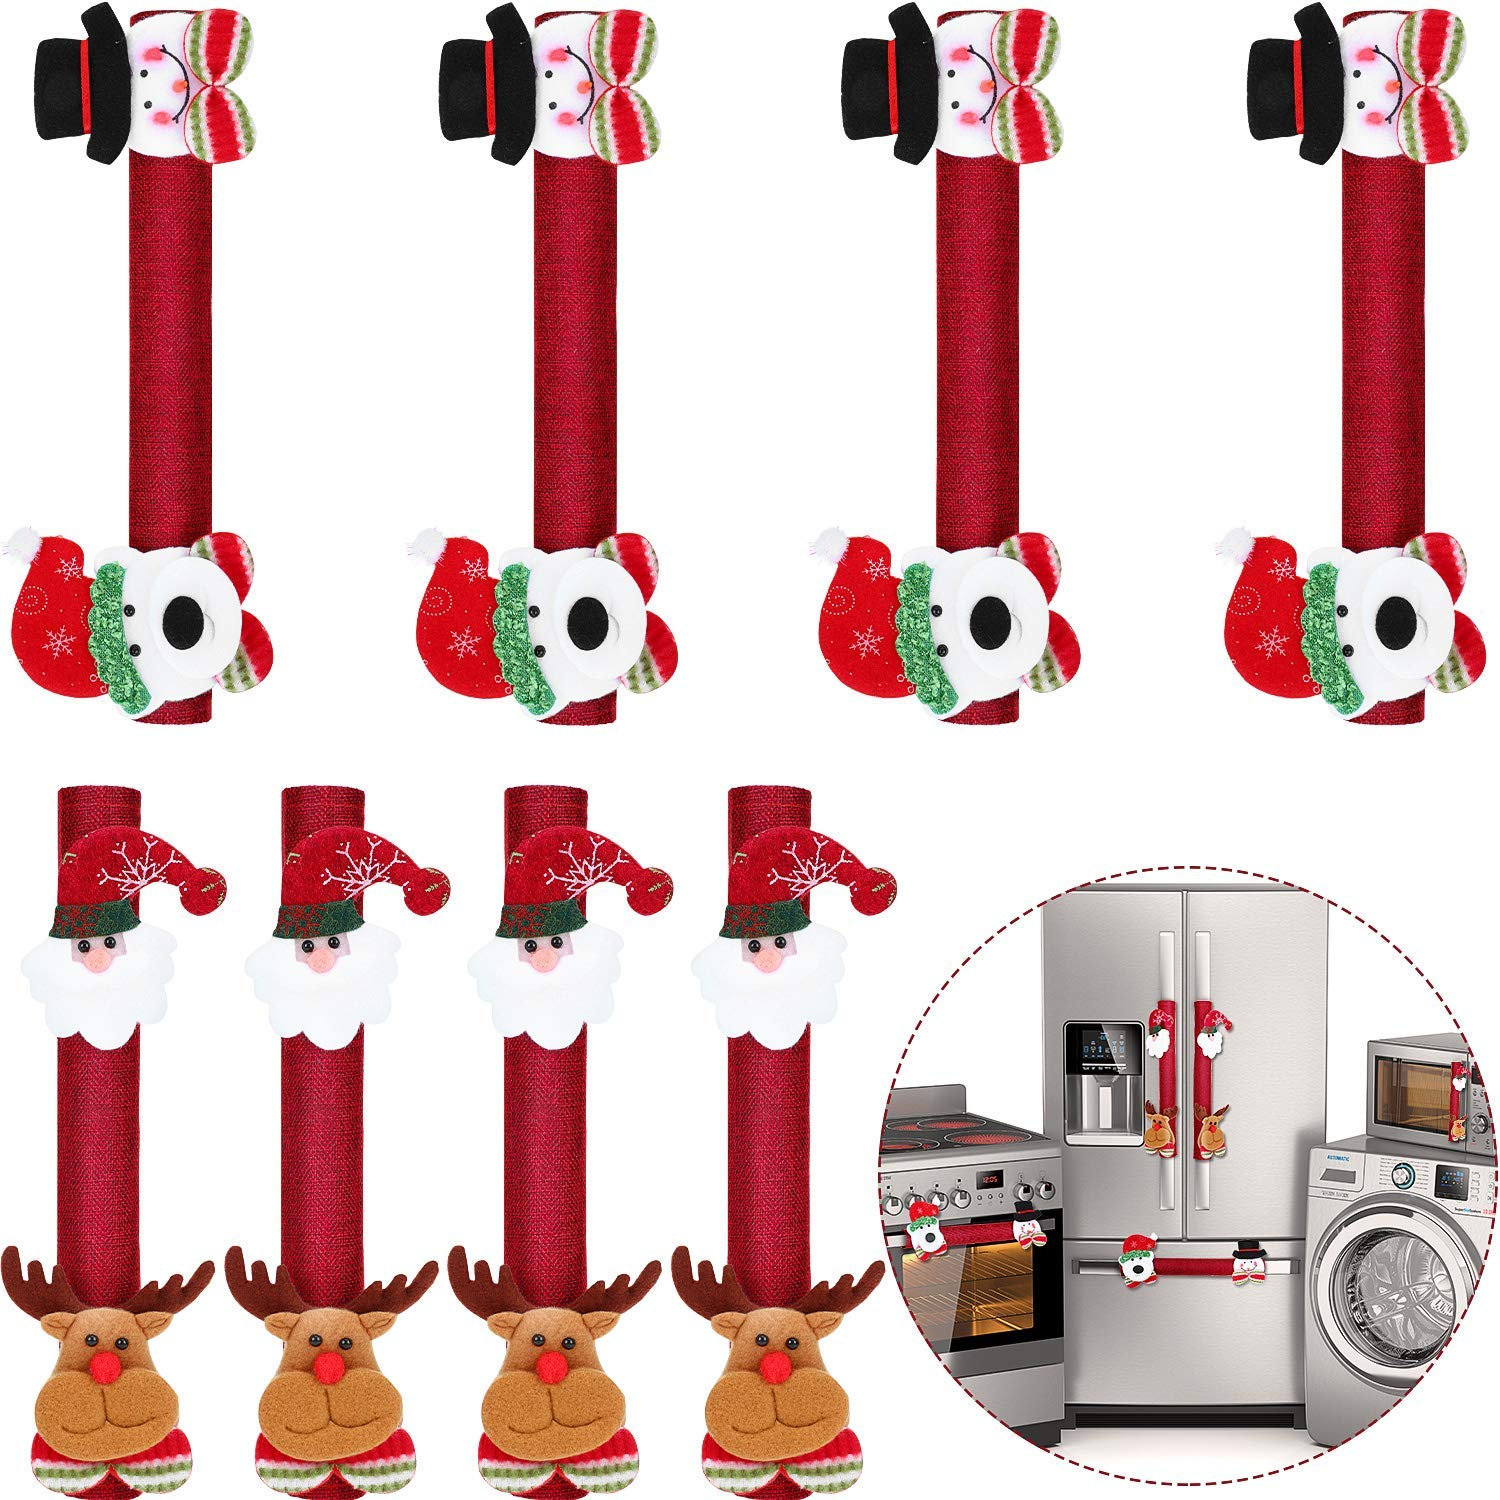 8 Pieces Christmas Kitchen Appliance Covers Set Santa Snowman Refrigerator Door Handle Covers for Christmas Fridge Microwave Dishwasher Handle Decorations